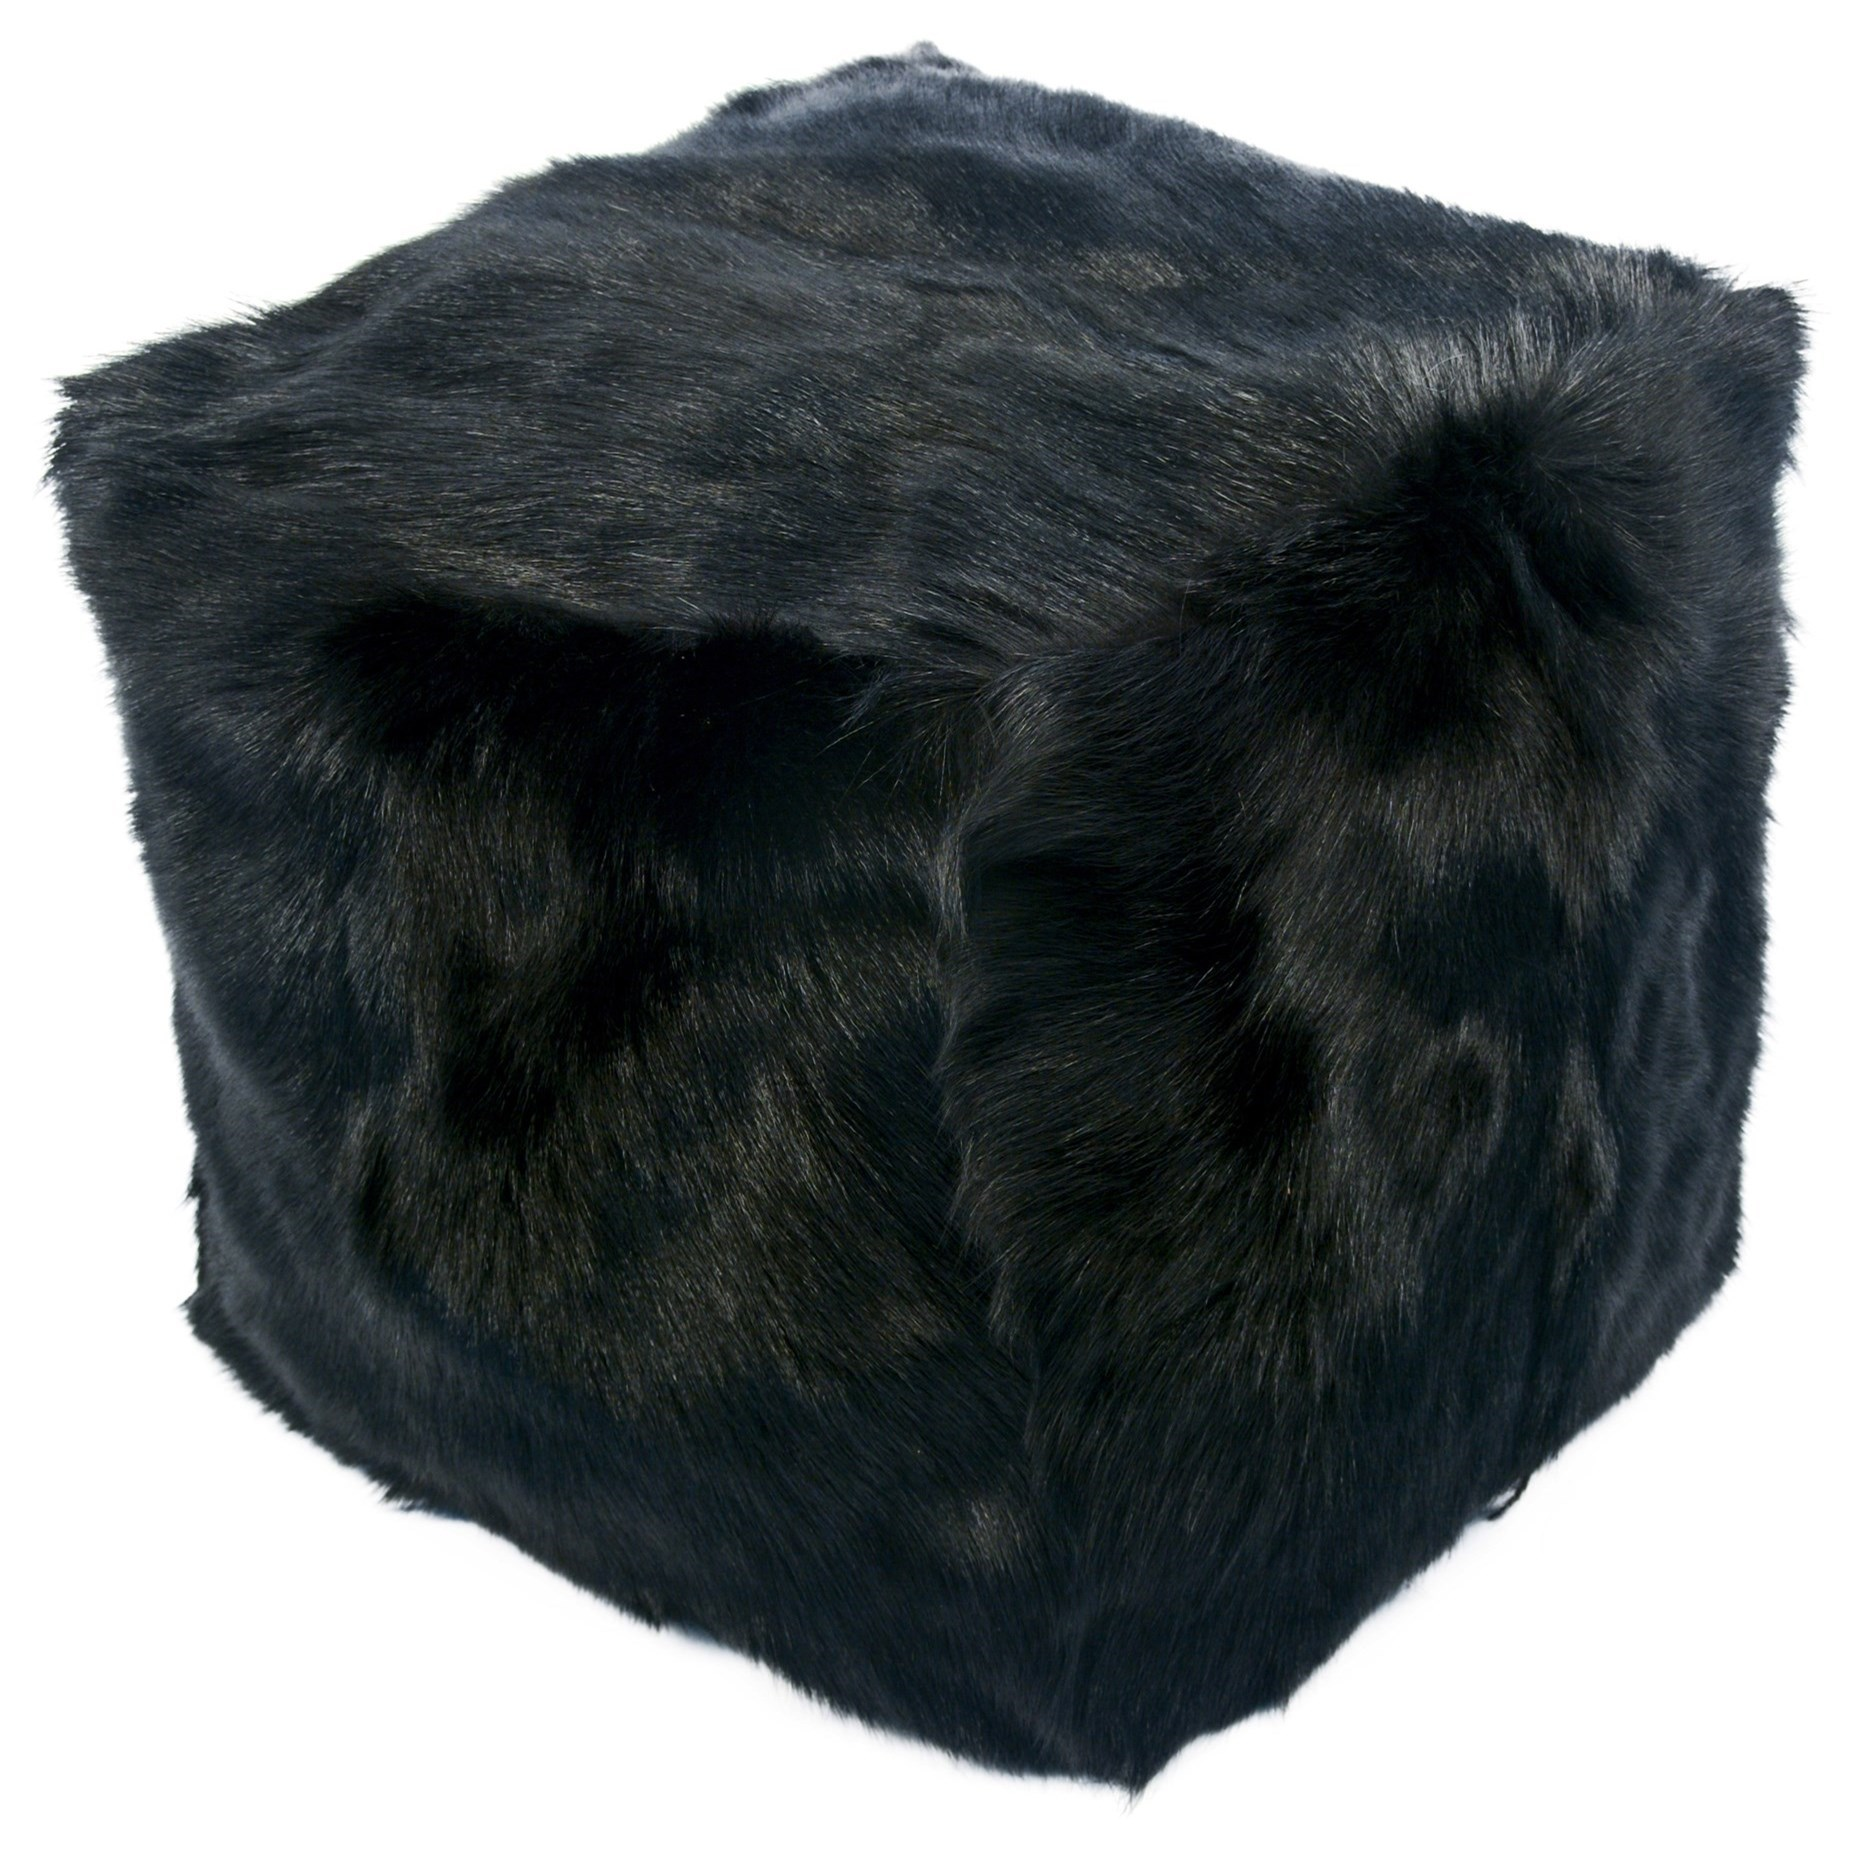 Goat Fur Pouf Black by Moe's Home Collection at Stoney Creek Furniture